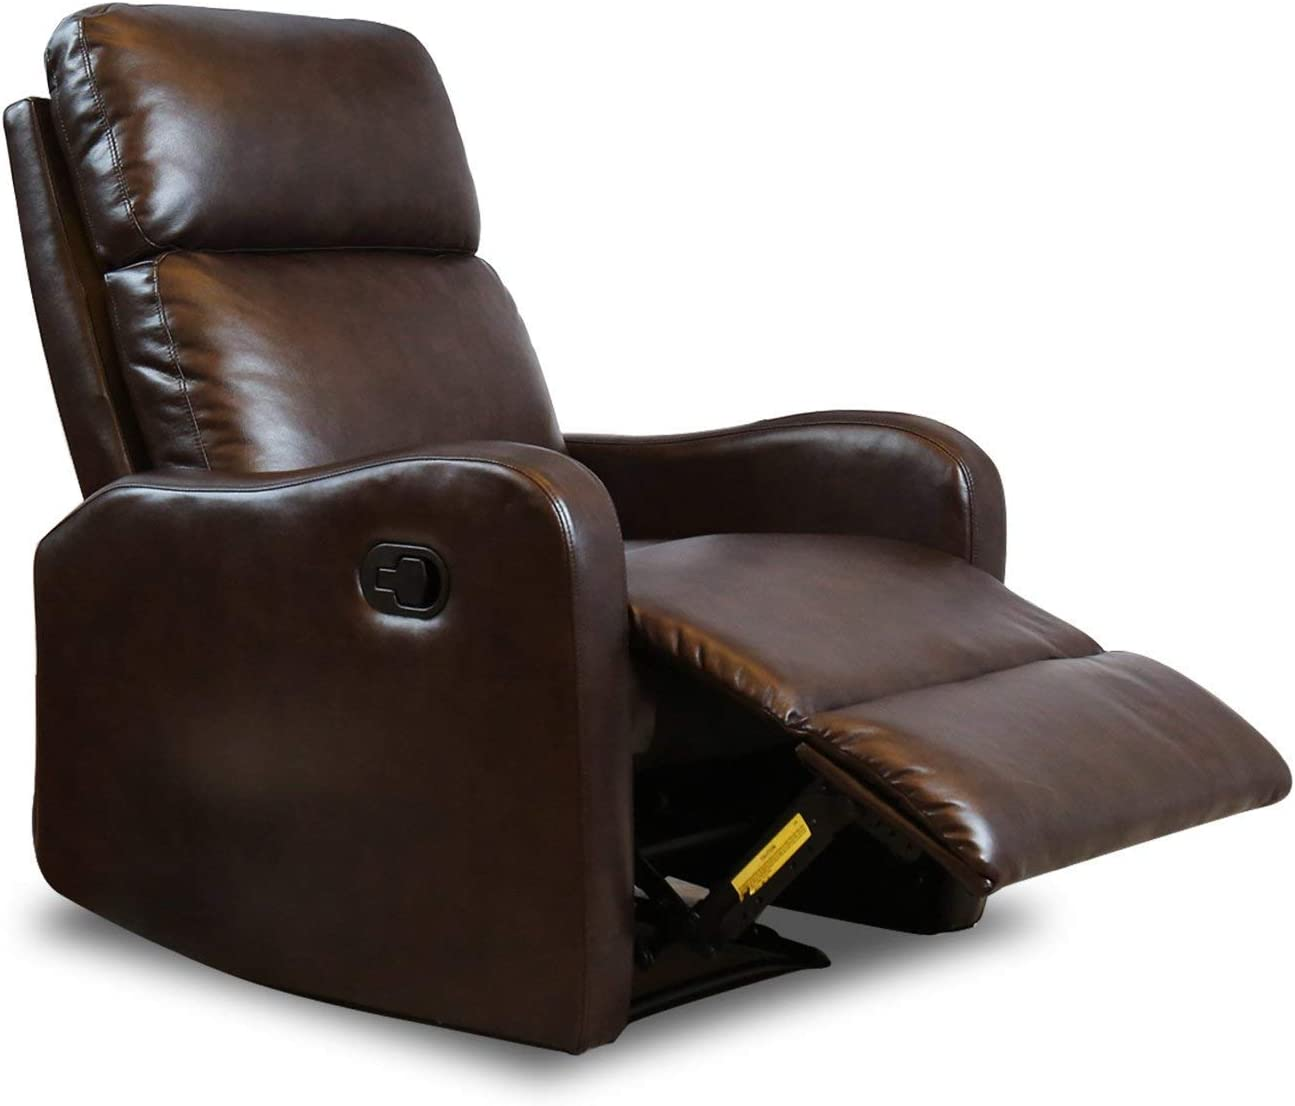 Bonzy Recliner Chair Contemporary Leather Recliner